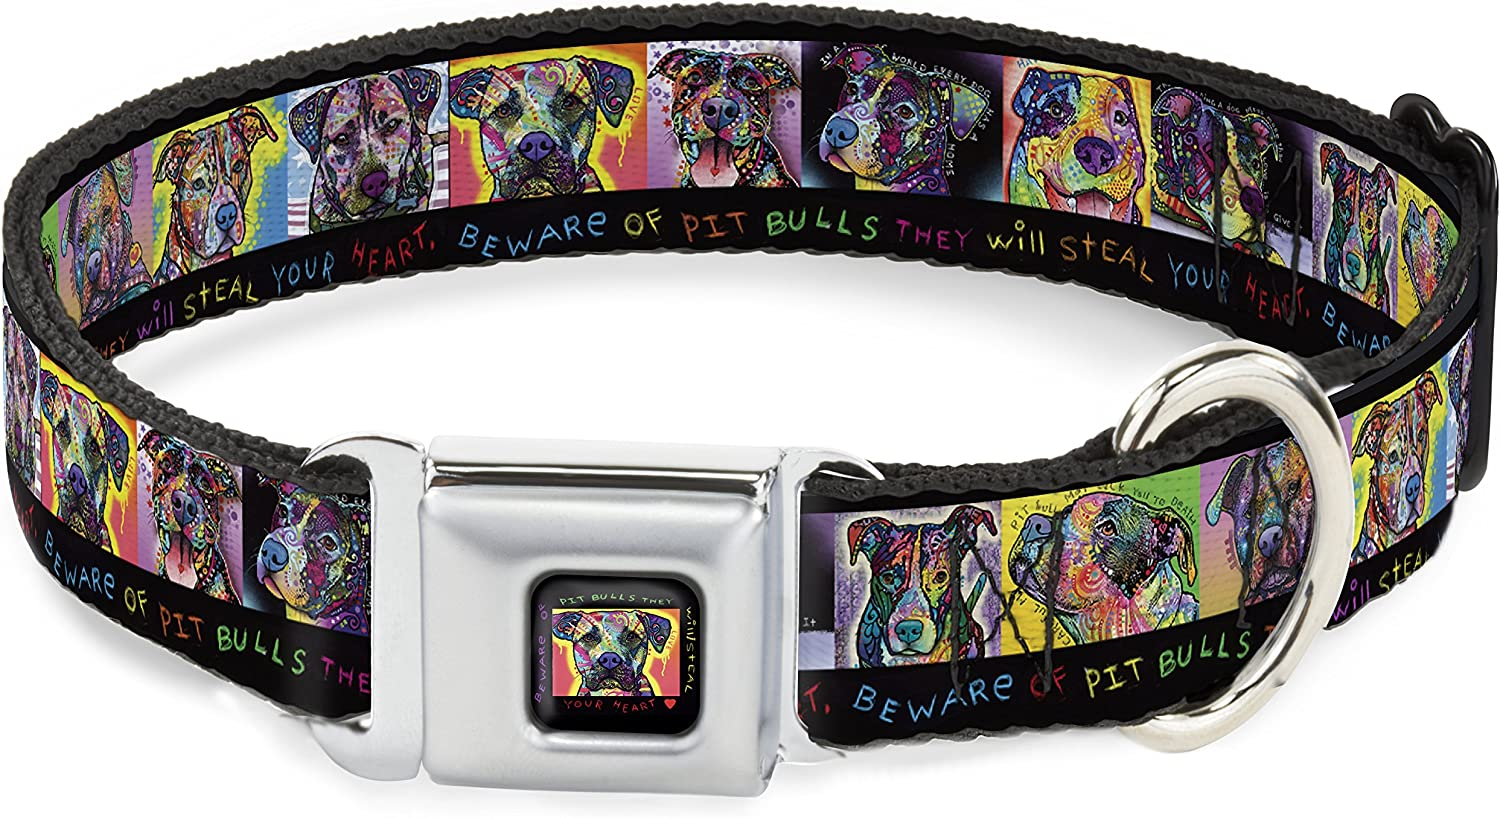 BuckleDown DcWal002Wm They Will Steal Your Heart Dog Collar, WideMedium, Black Multi color